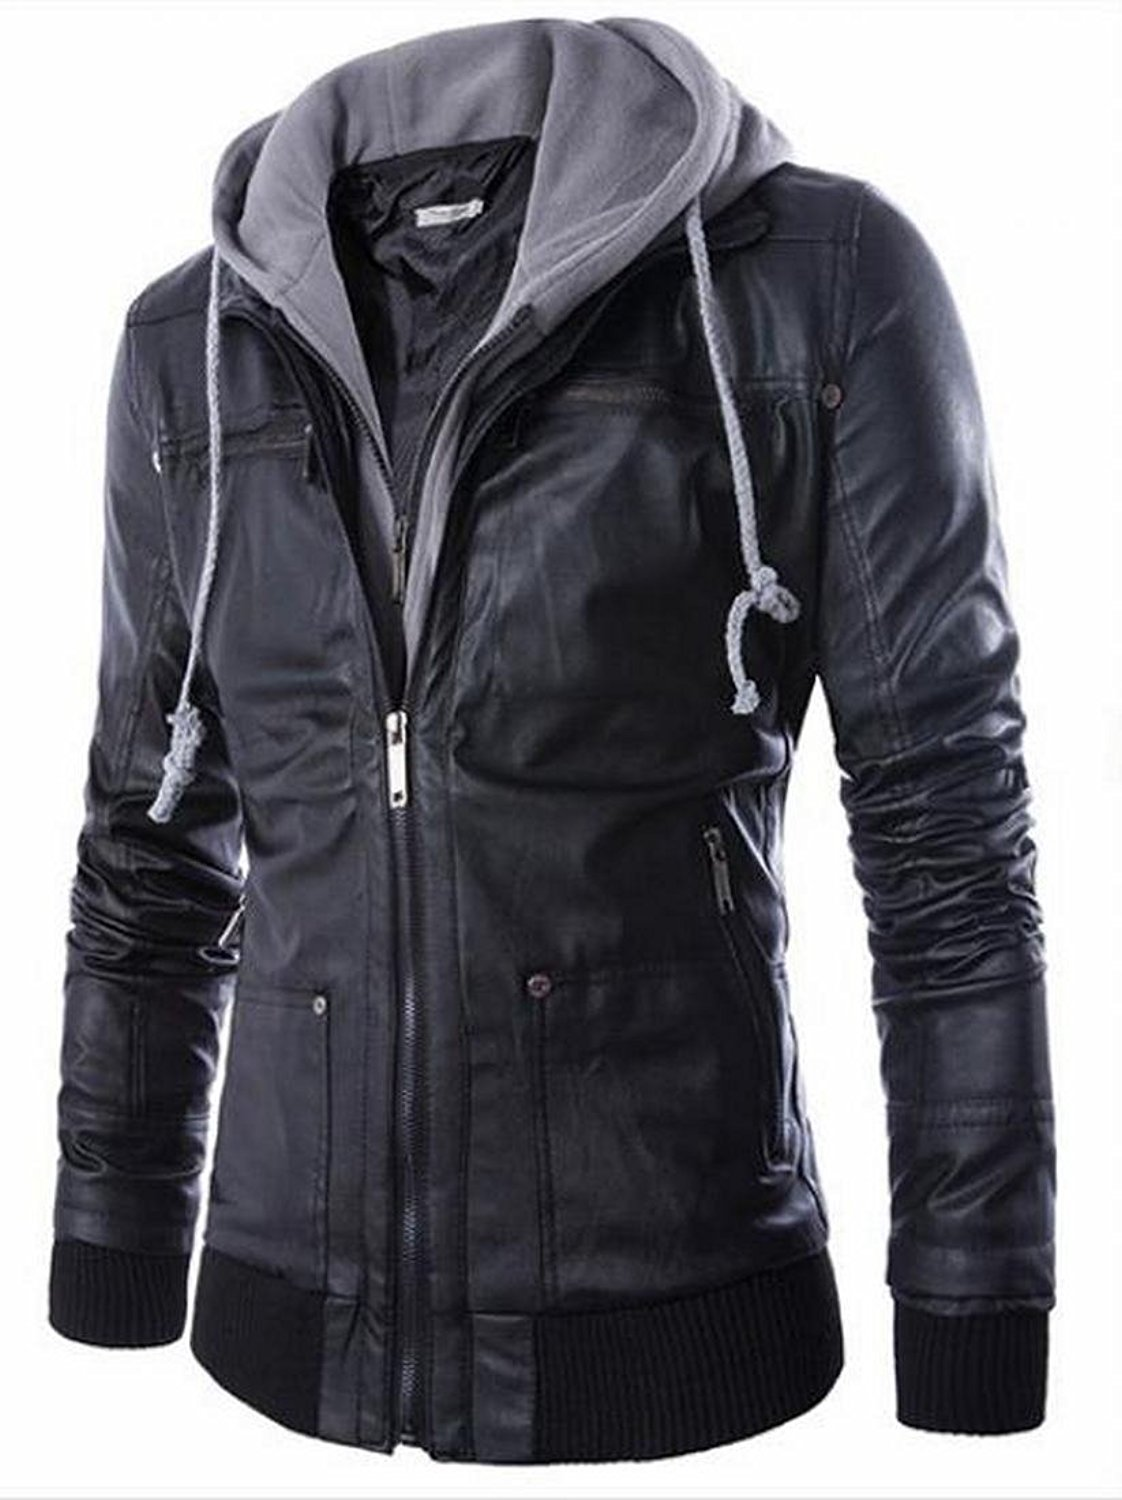 Compare Prices on Stylish Leather Jackets for Men- Online Shopping ...